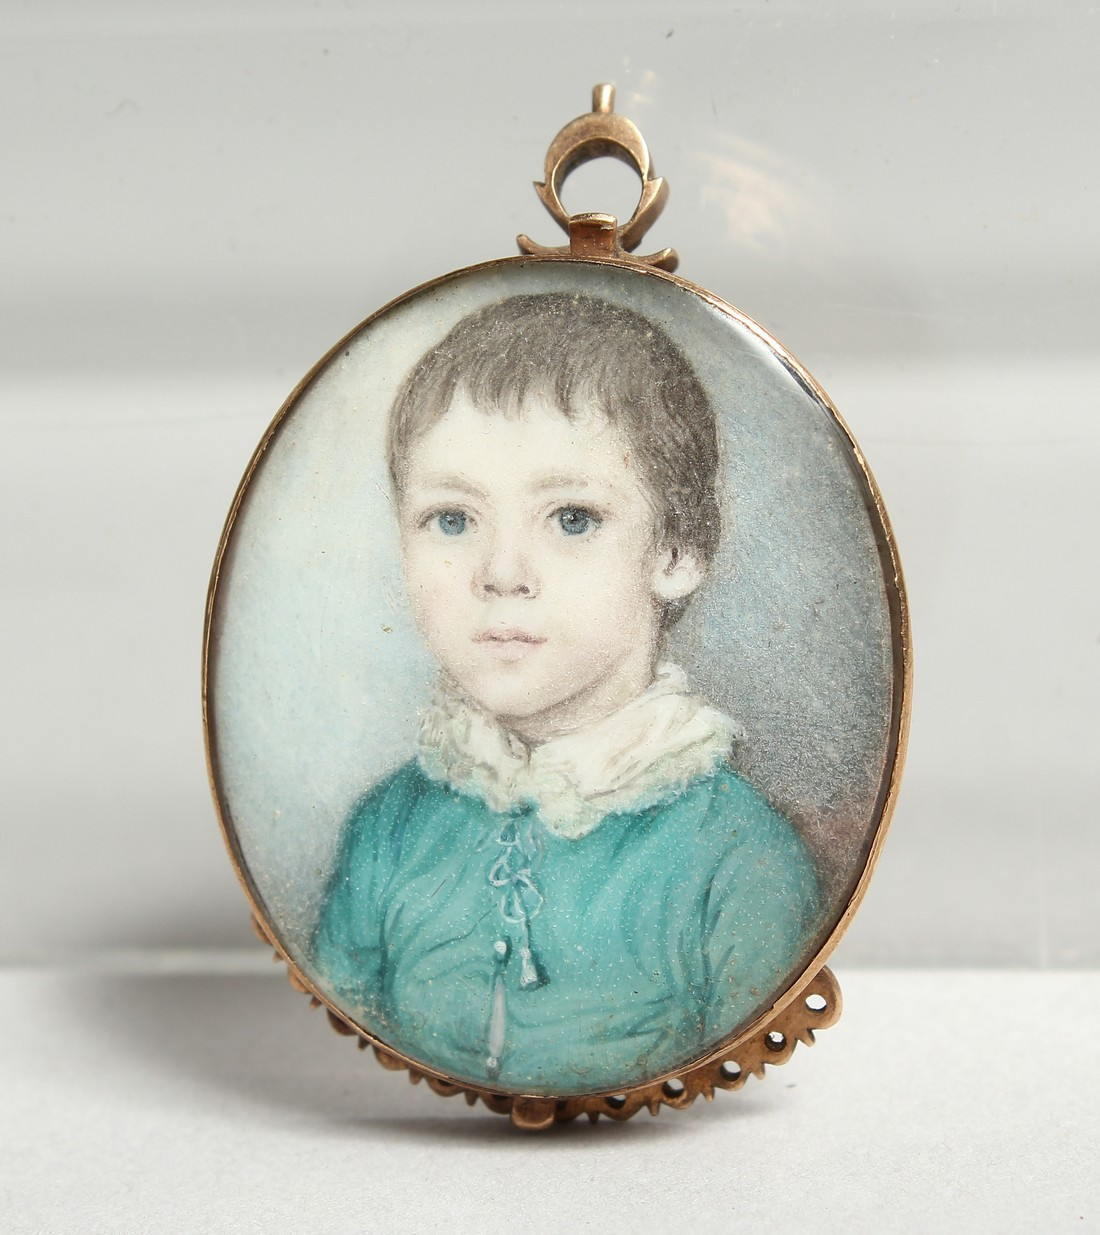 A GEORGIAN OVAL MINIATURE OF A YOUNG BOY, young boys in a gilt frame. 1.25ins x1ins